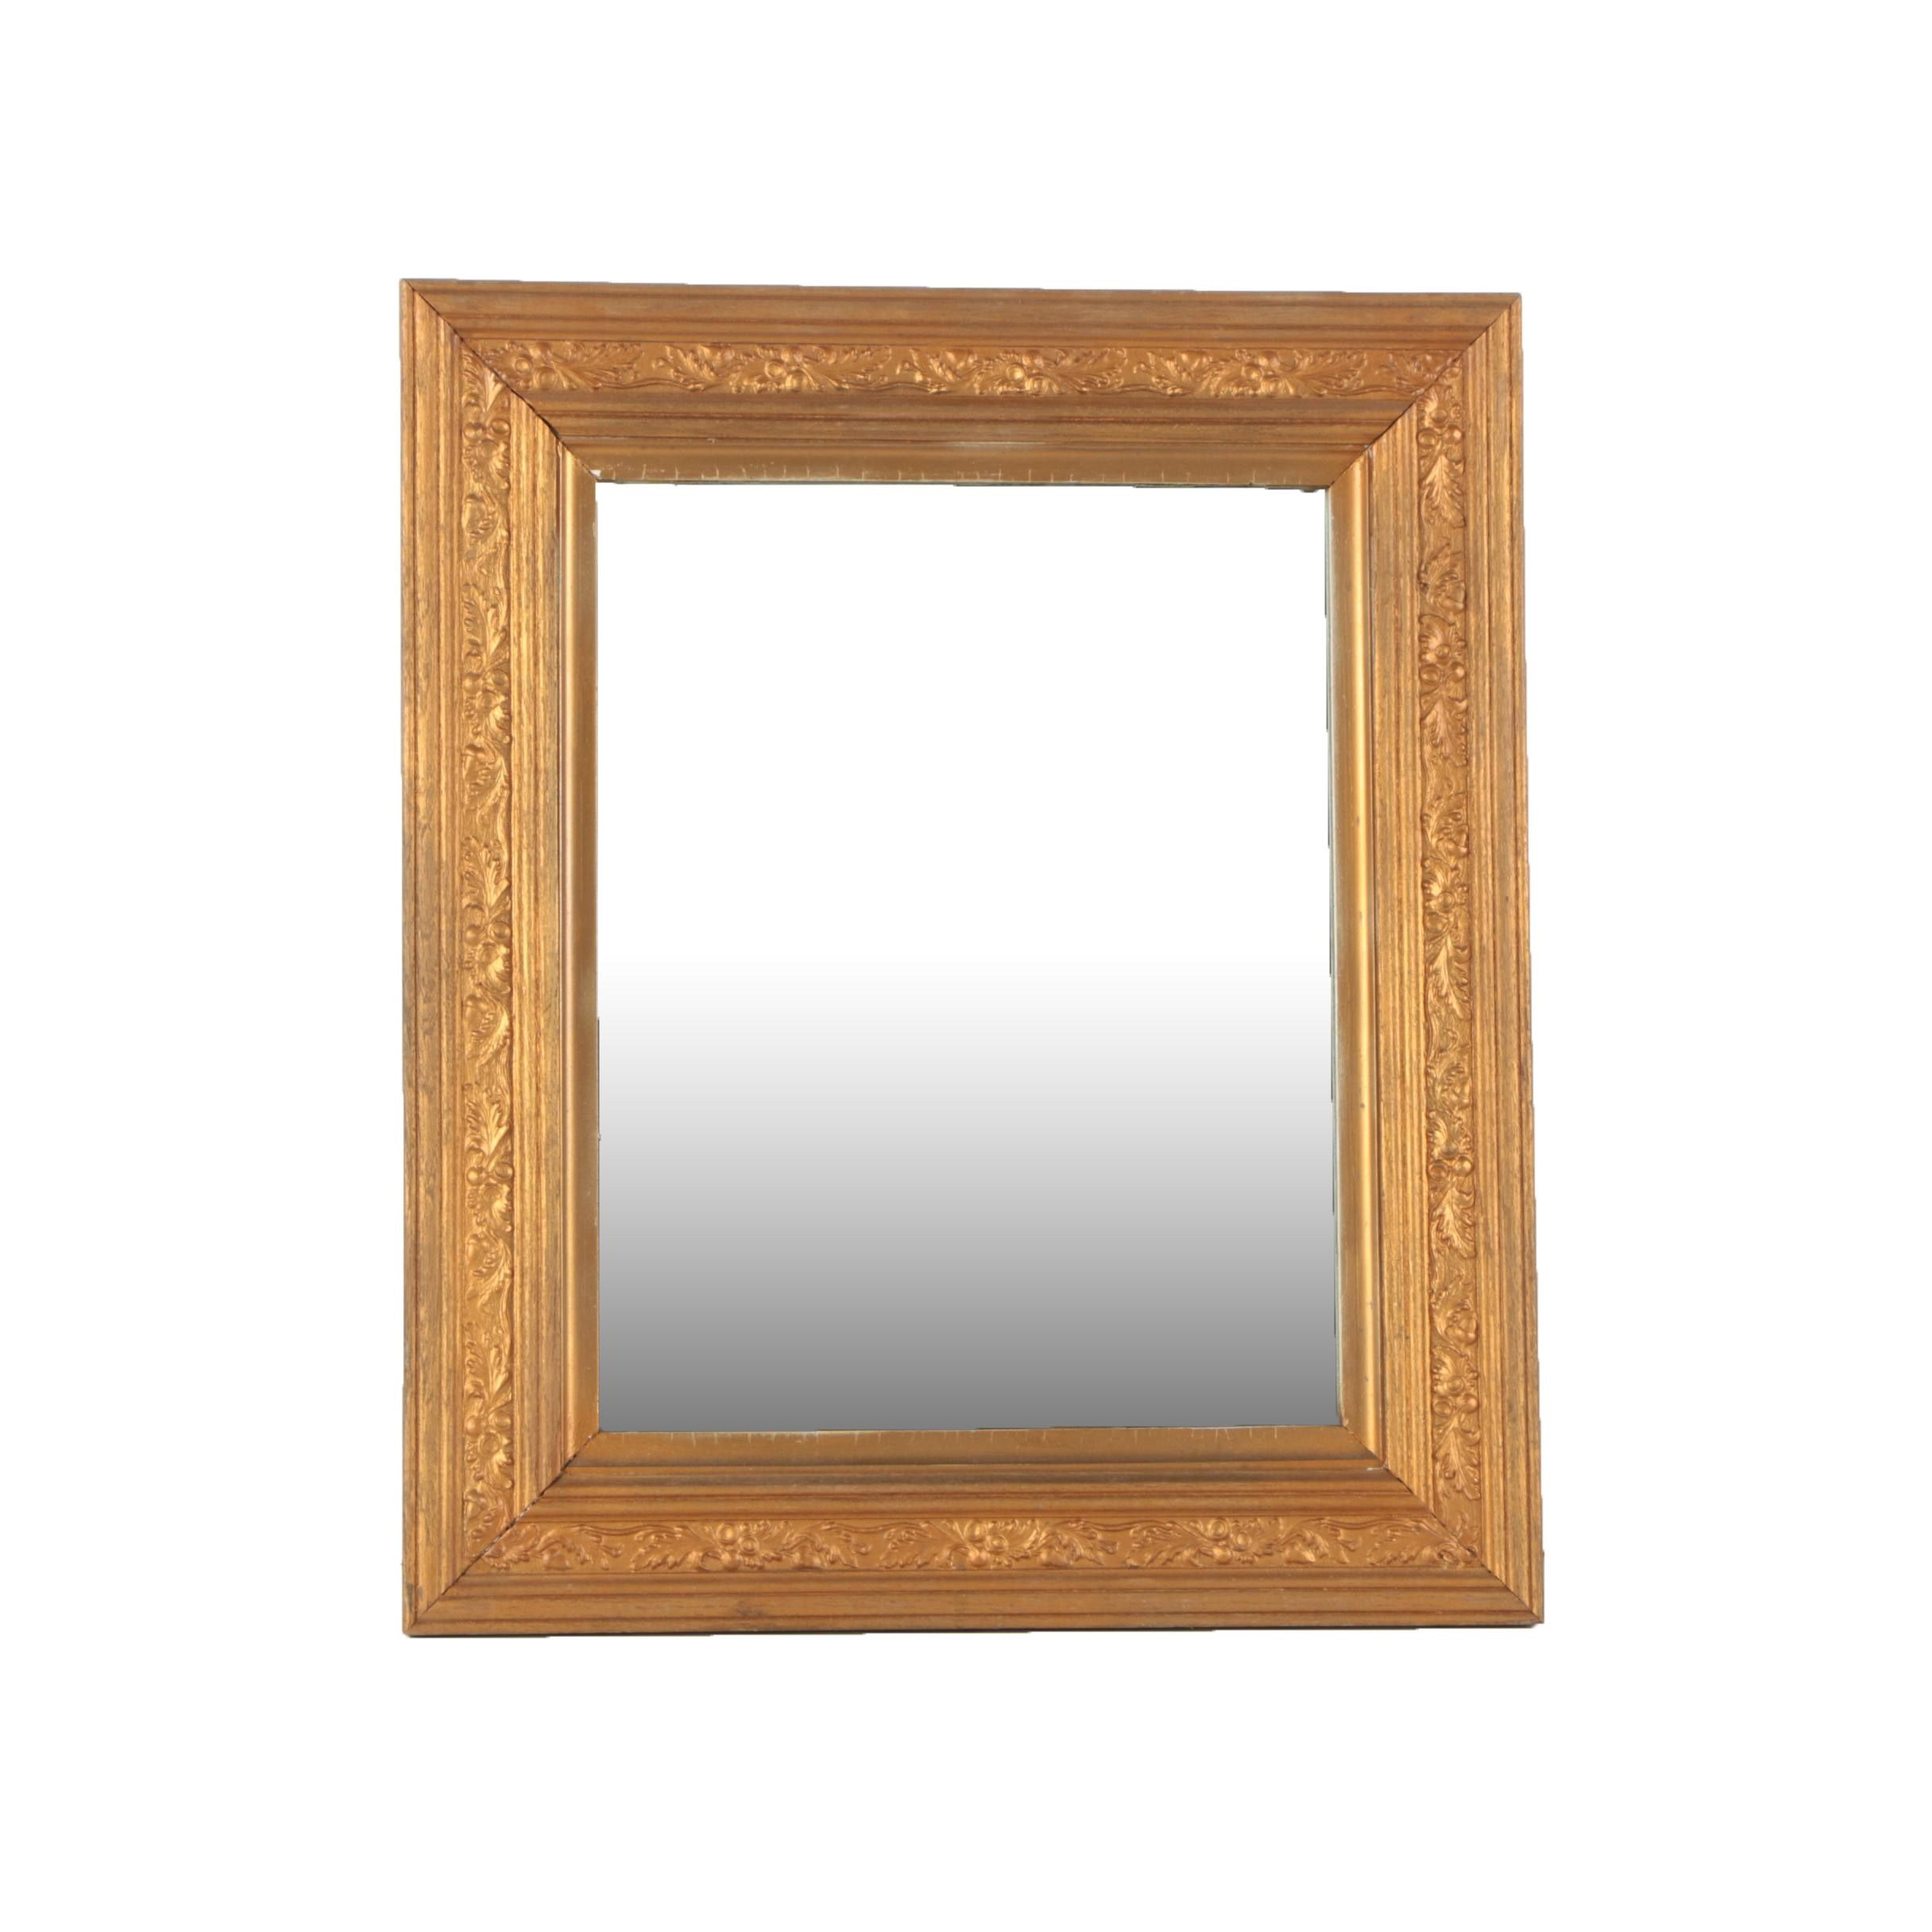 Late 19th Century Wood Framed Wall Mirror